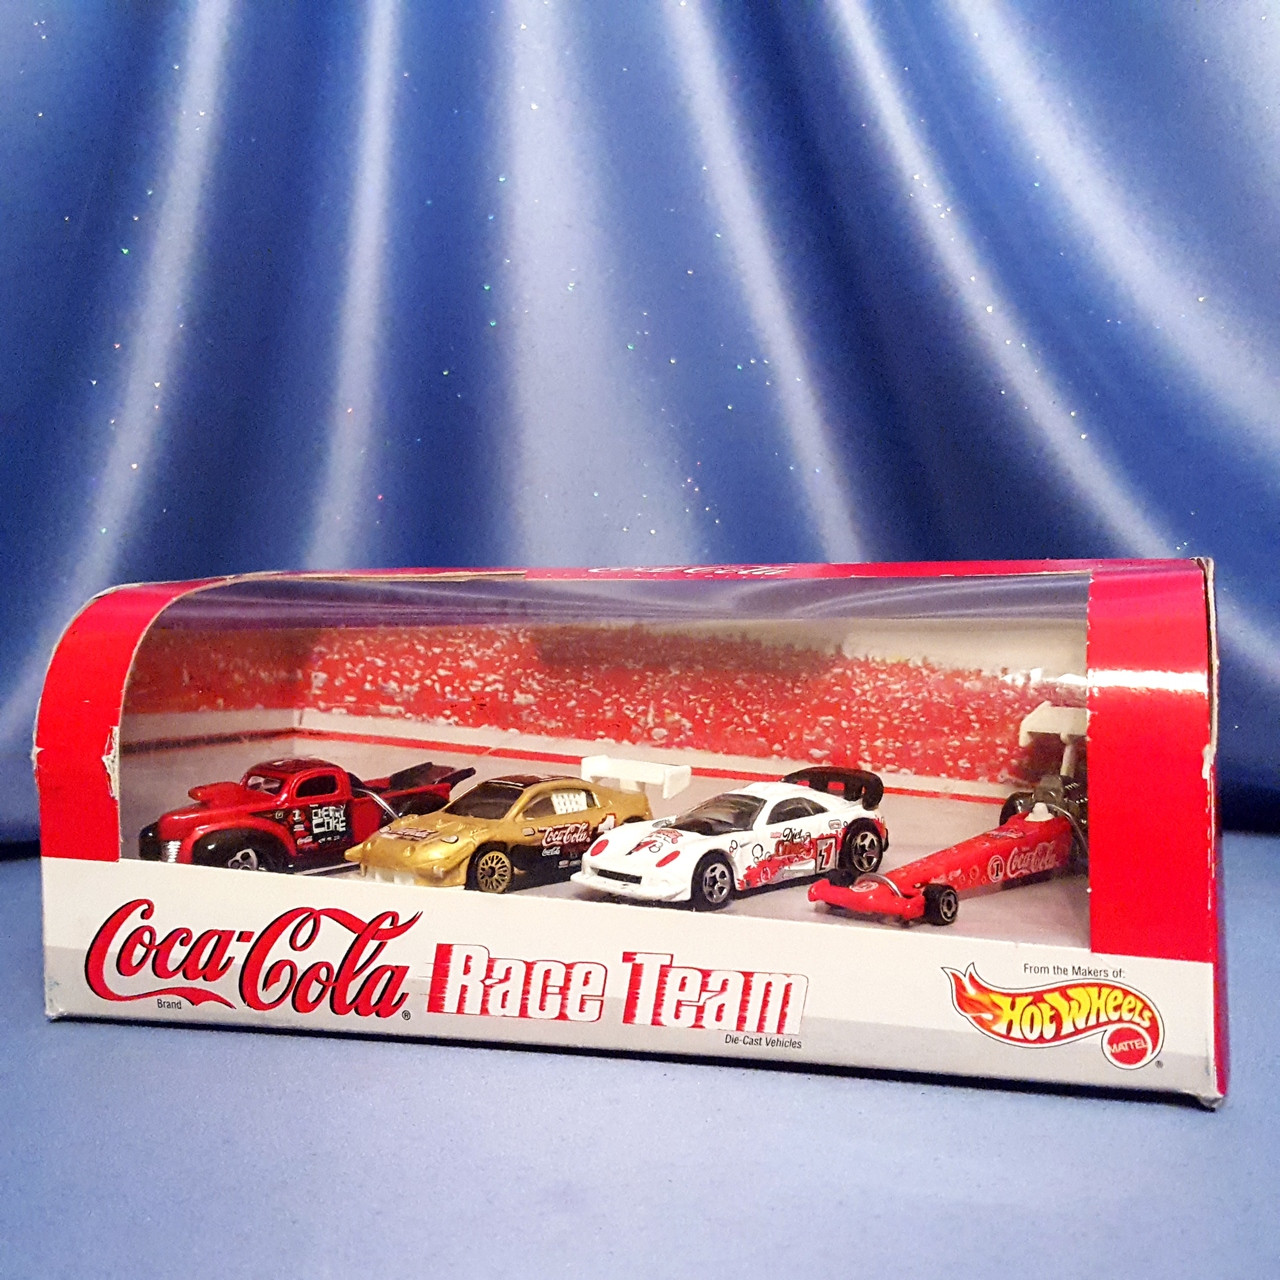 Coca-Cola Race Team 4 Piece Collection by Hot Wheels.